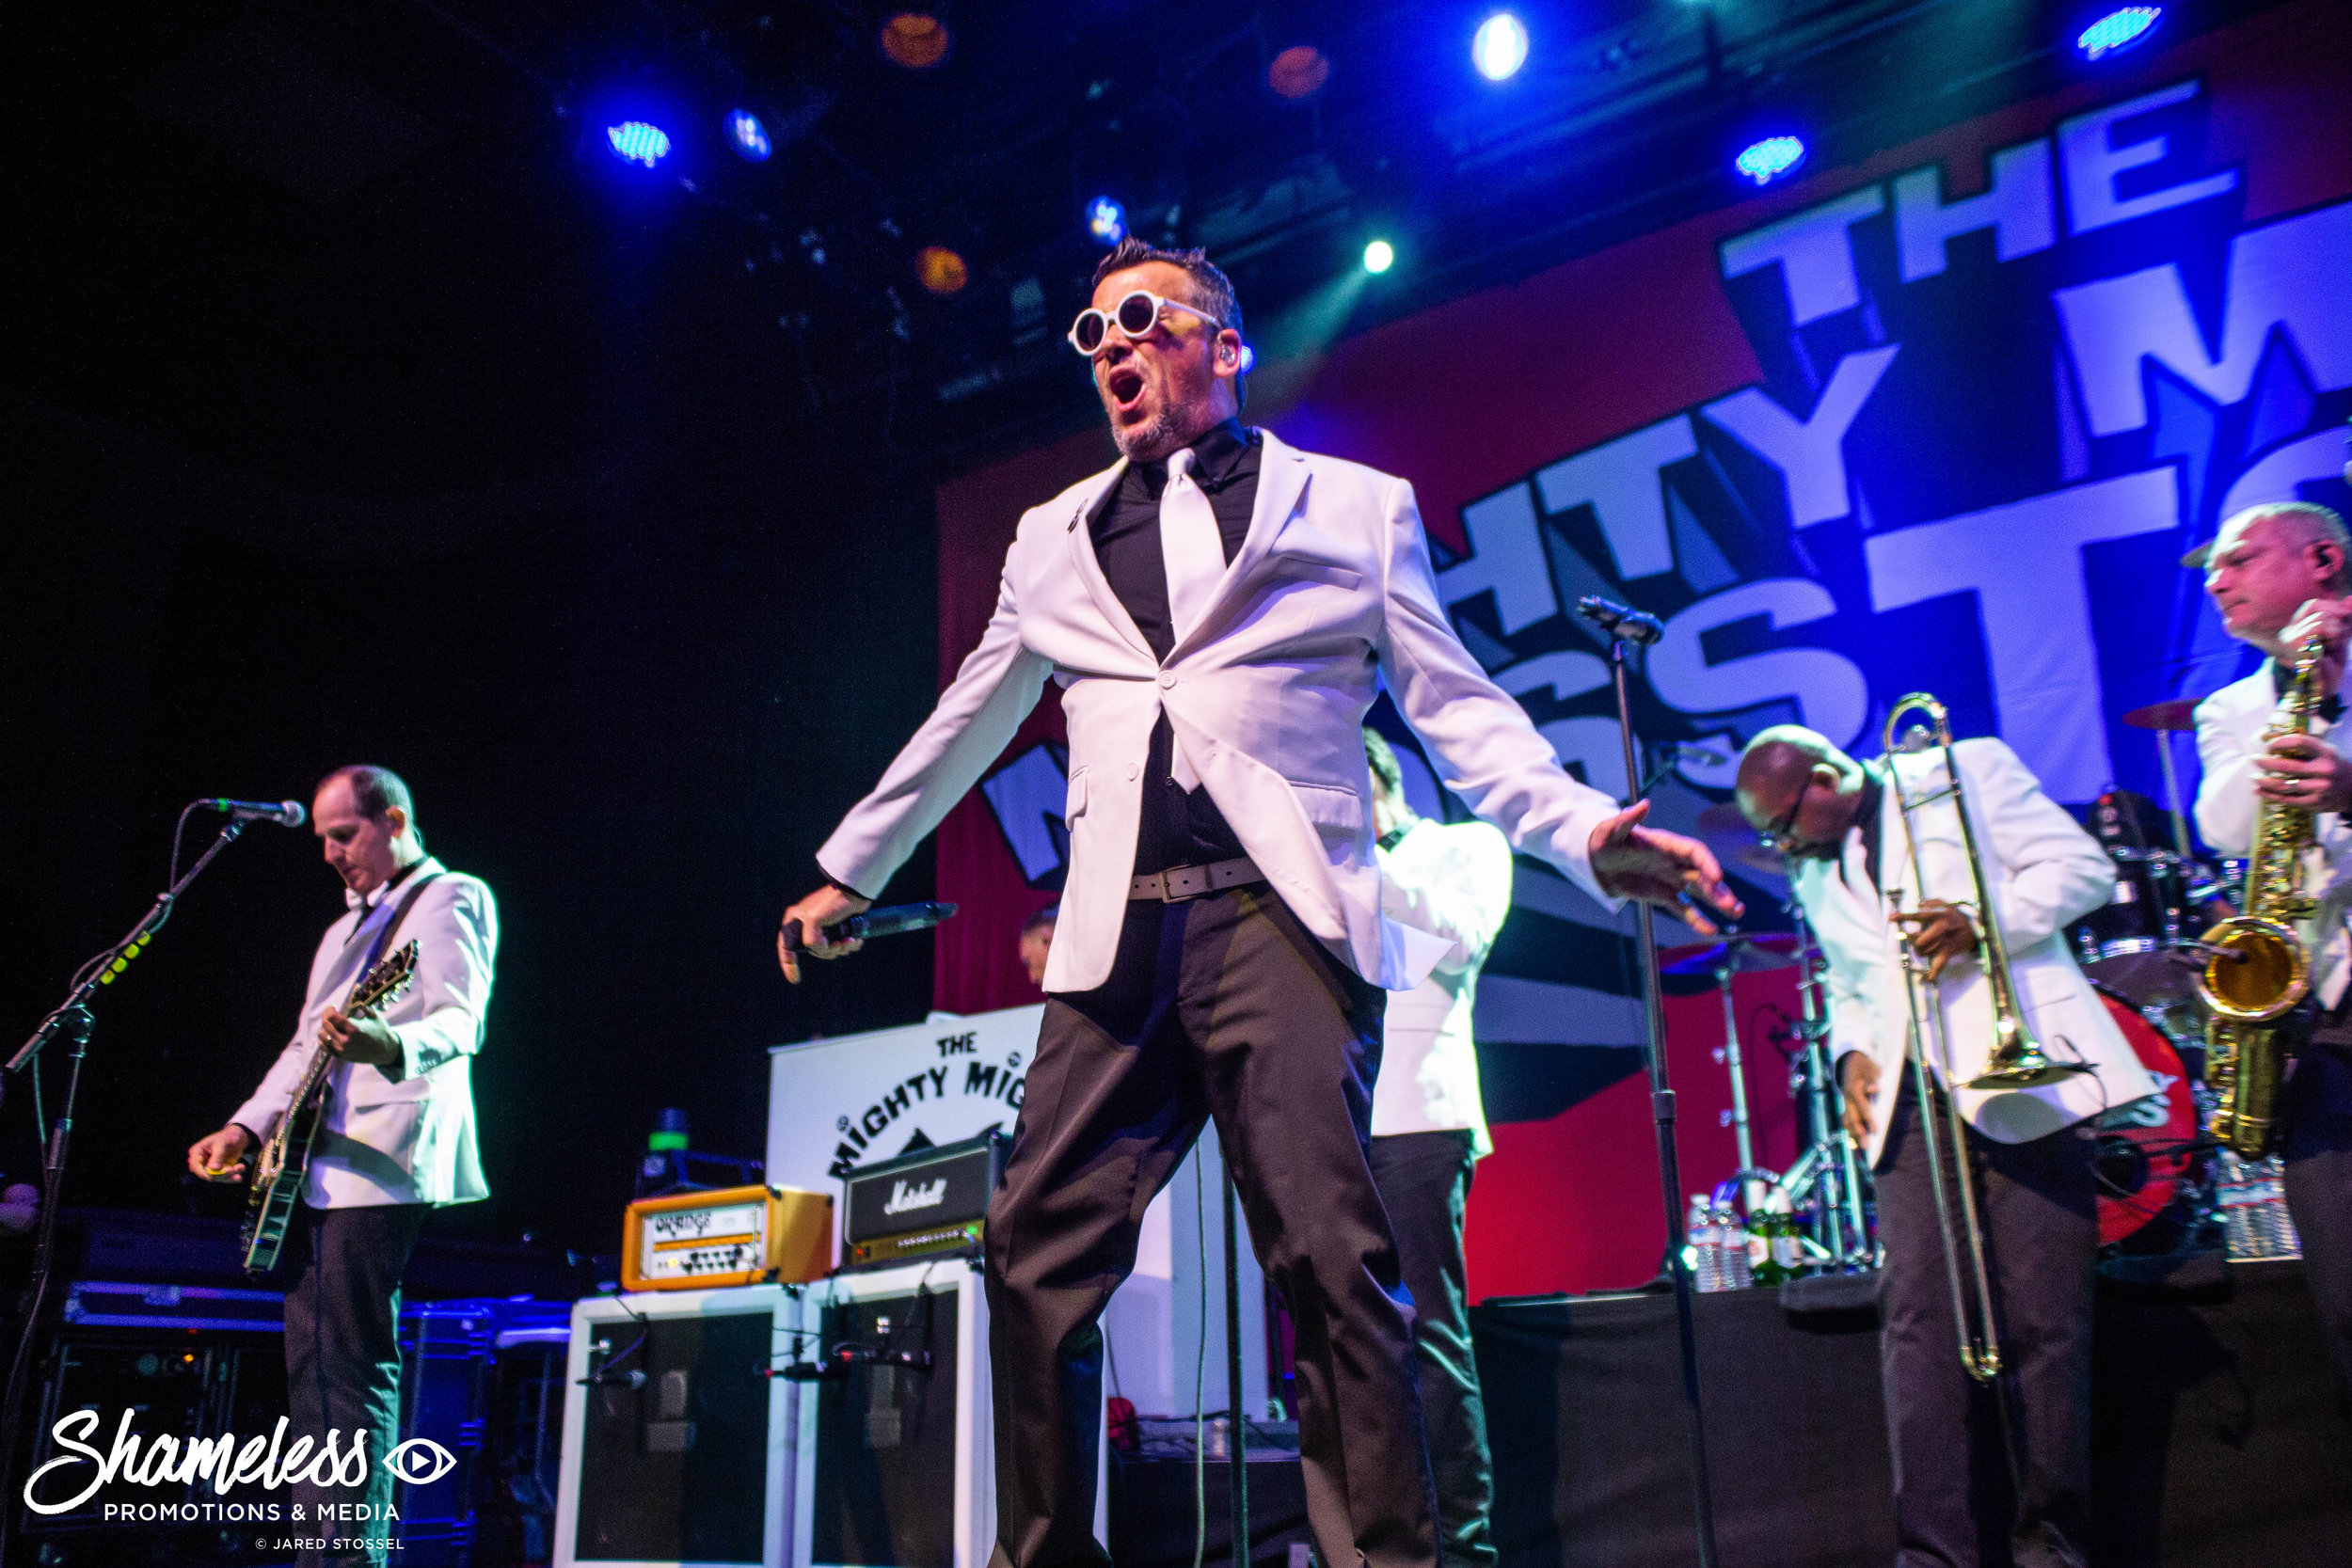 The Mighty Mighty Bosstones performing at The Fillmore in San Francisco, CA. June 27th, 2018. Photo Credit: Jared Stossel.